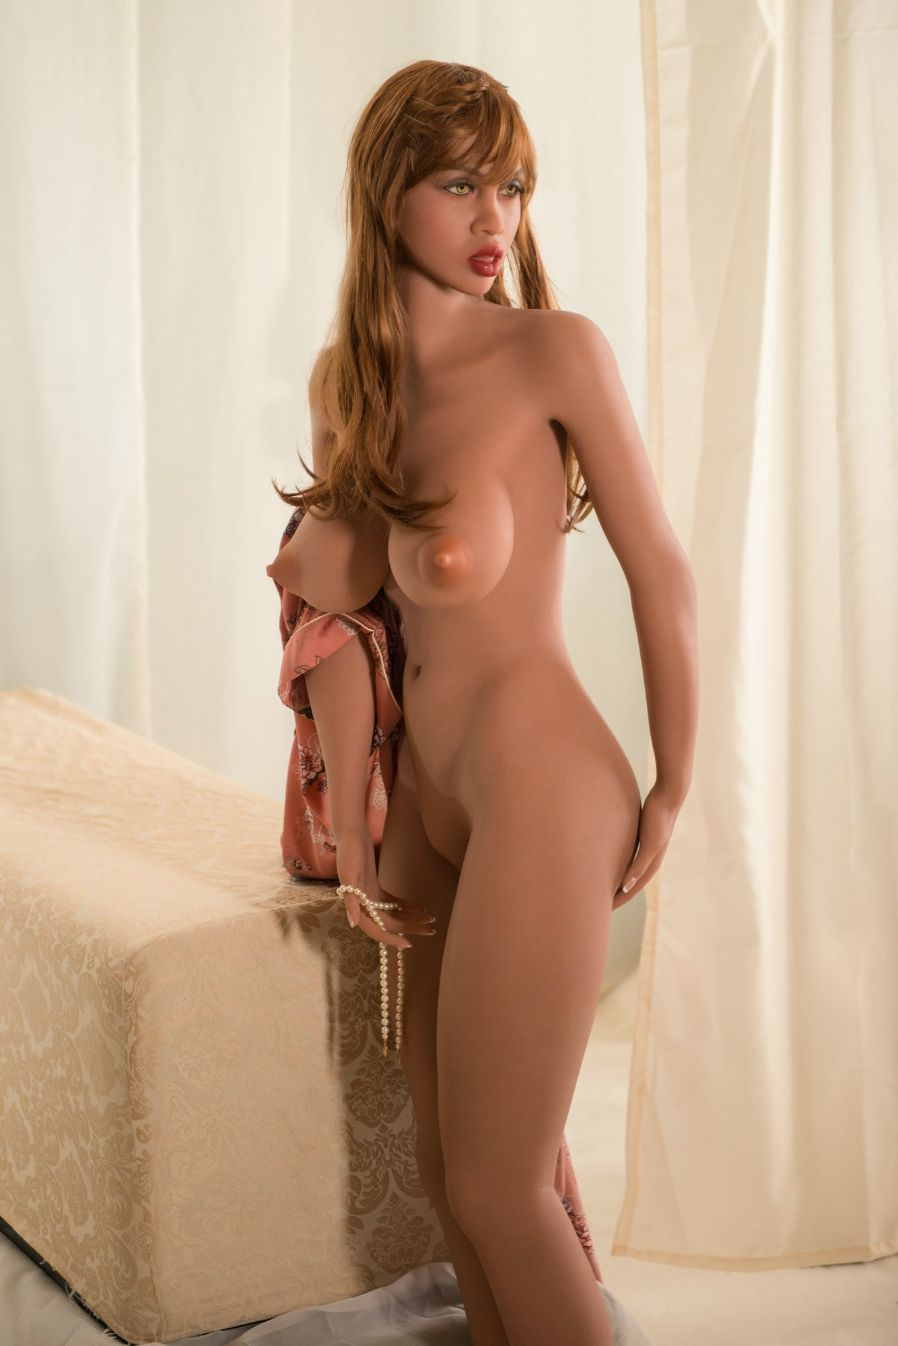 abby 157cm featured big boobs athletic red hair tan skin tpe yl sex doll(5)